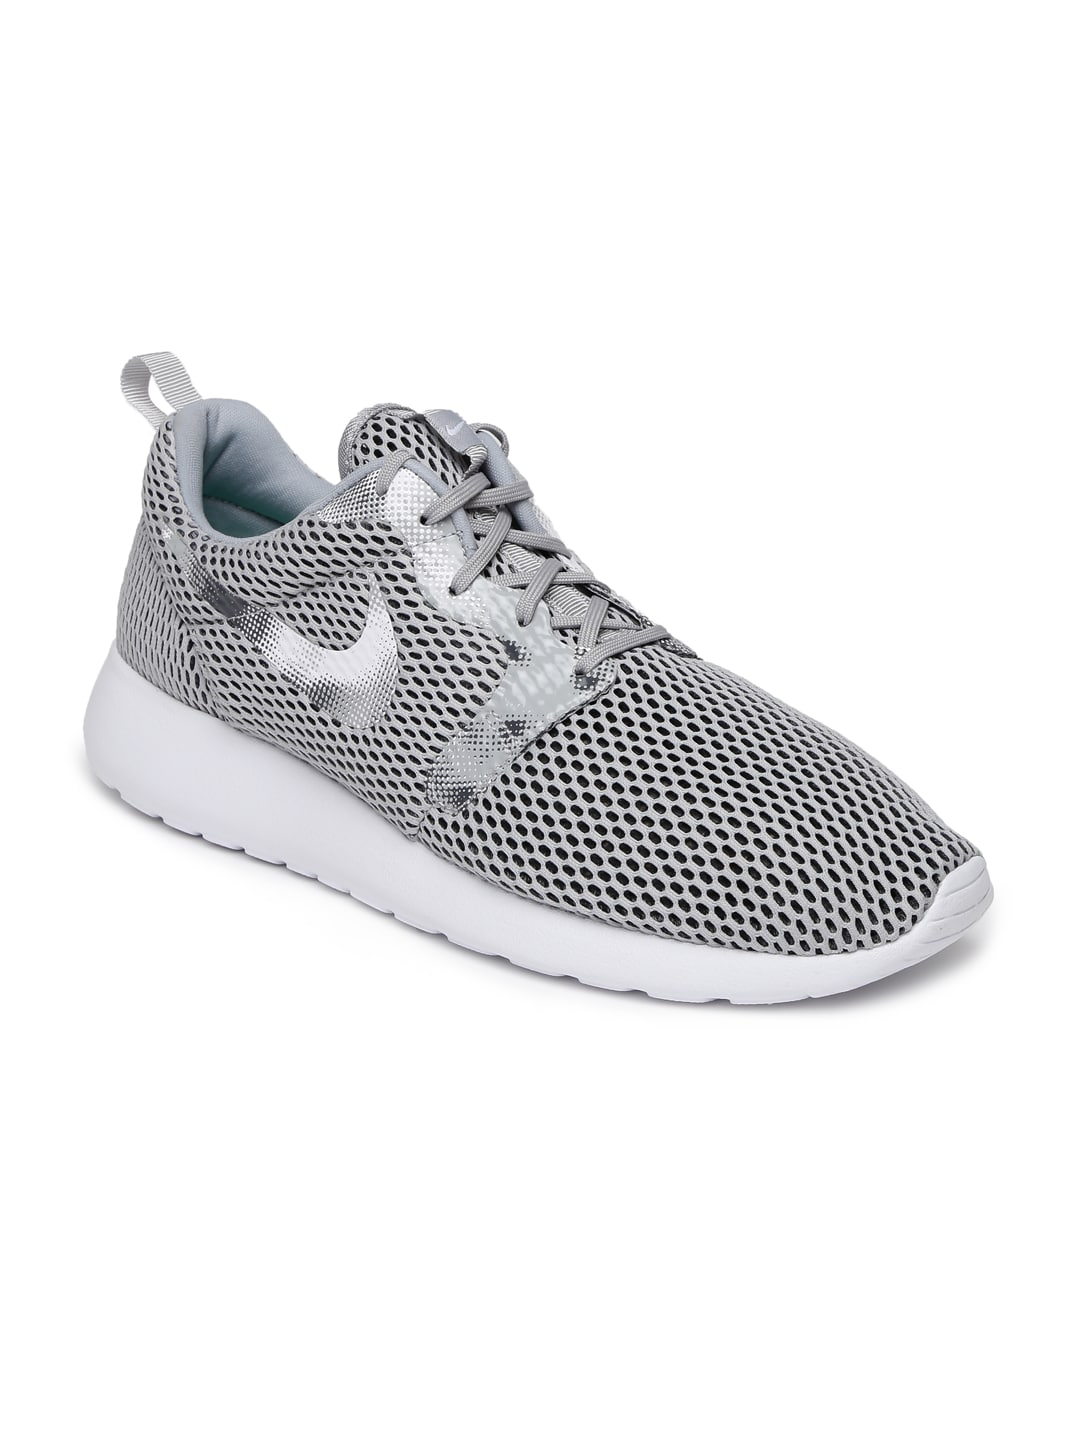 e2bc27314941 Nike 859526-001 Men Grey Roshe One Hyp Br Gpx Sneakers- Price in India